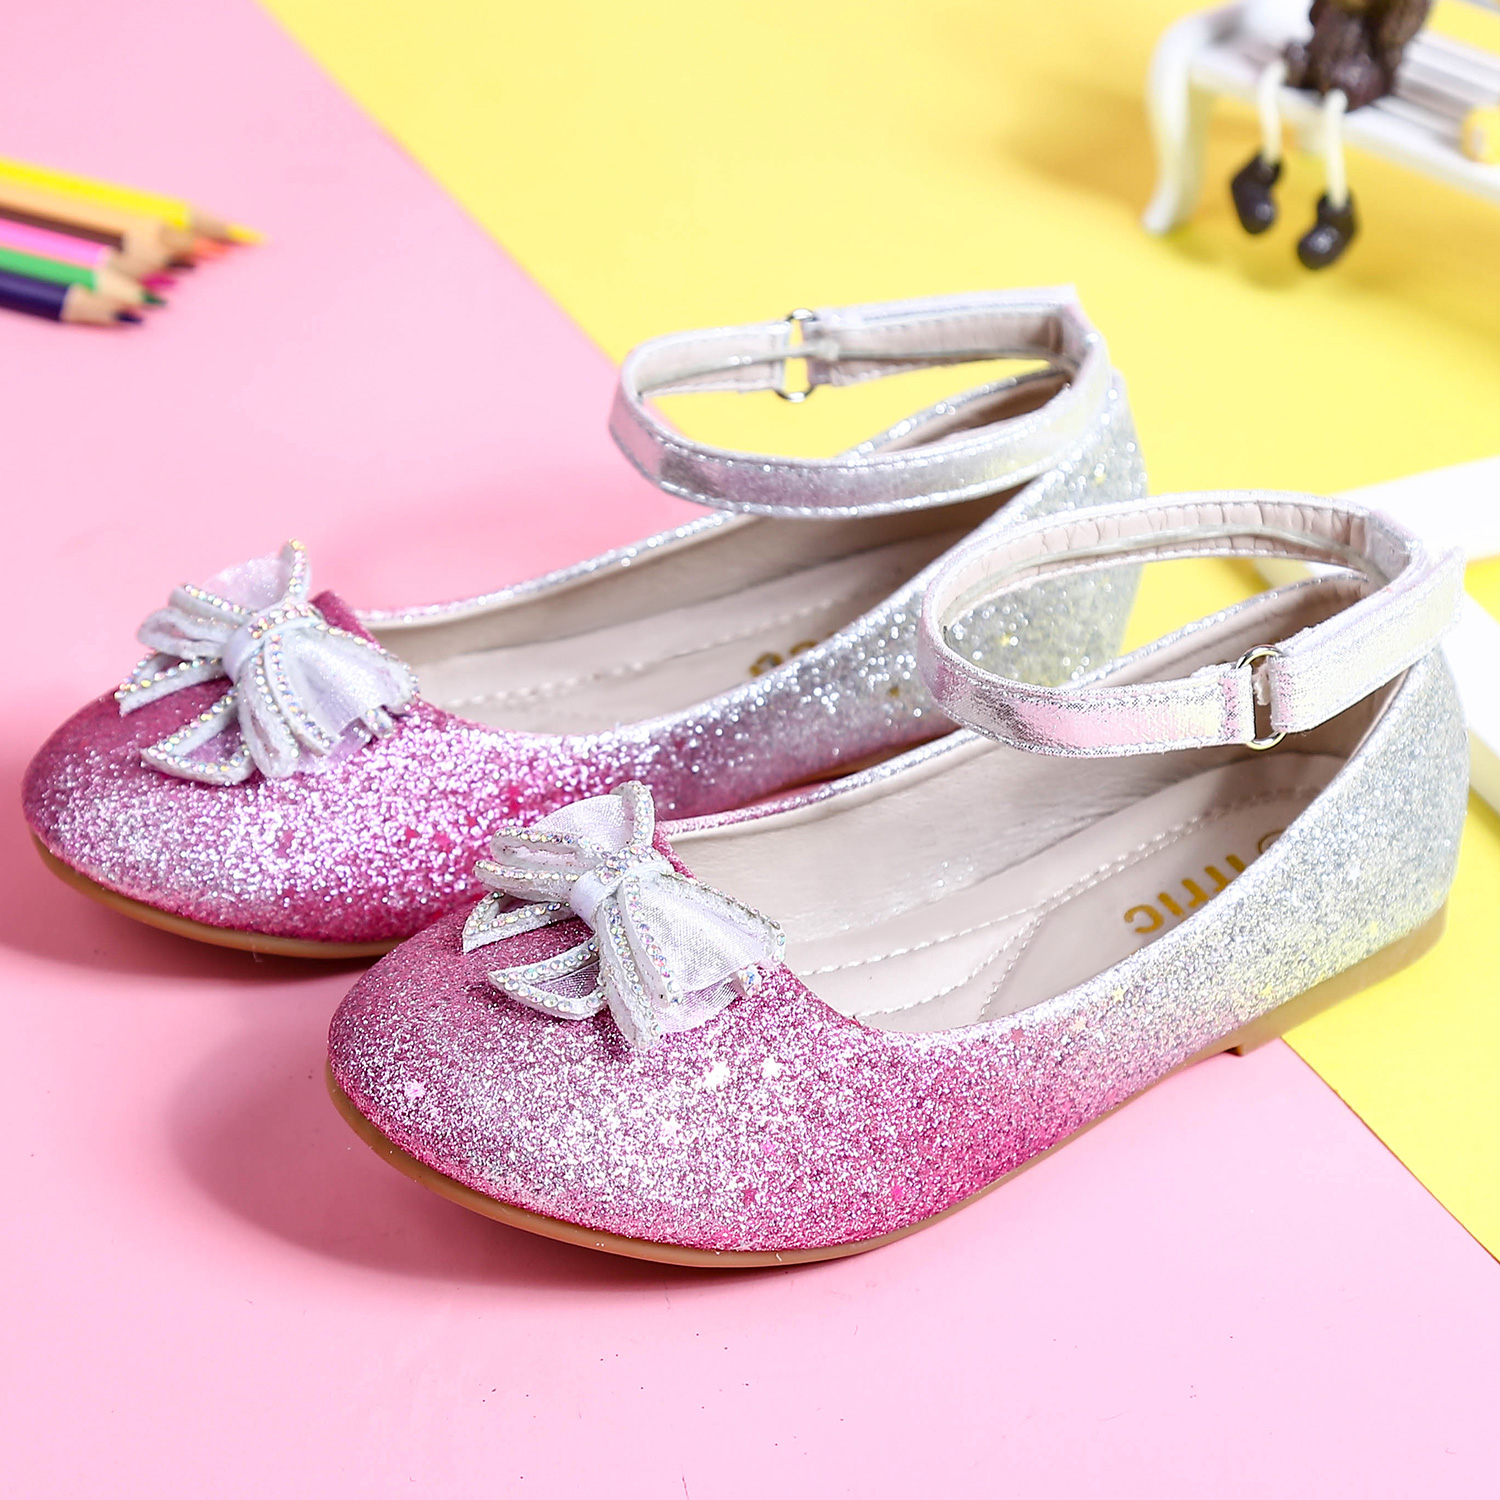 Fashion Girls Marry Jane Shoes Spring Summer Wedding Party Flats Red Pink Comfortable Dance Shoes Girls Flats Cheap Shoes